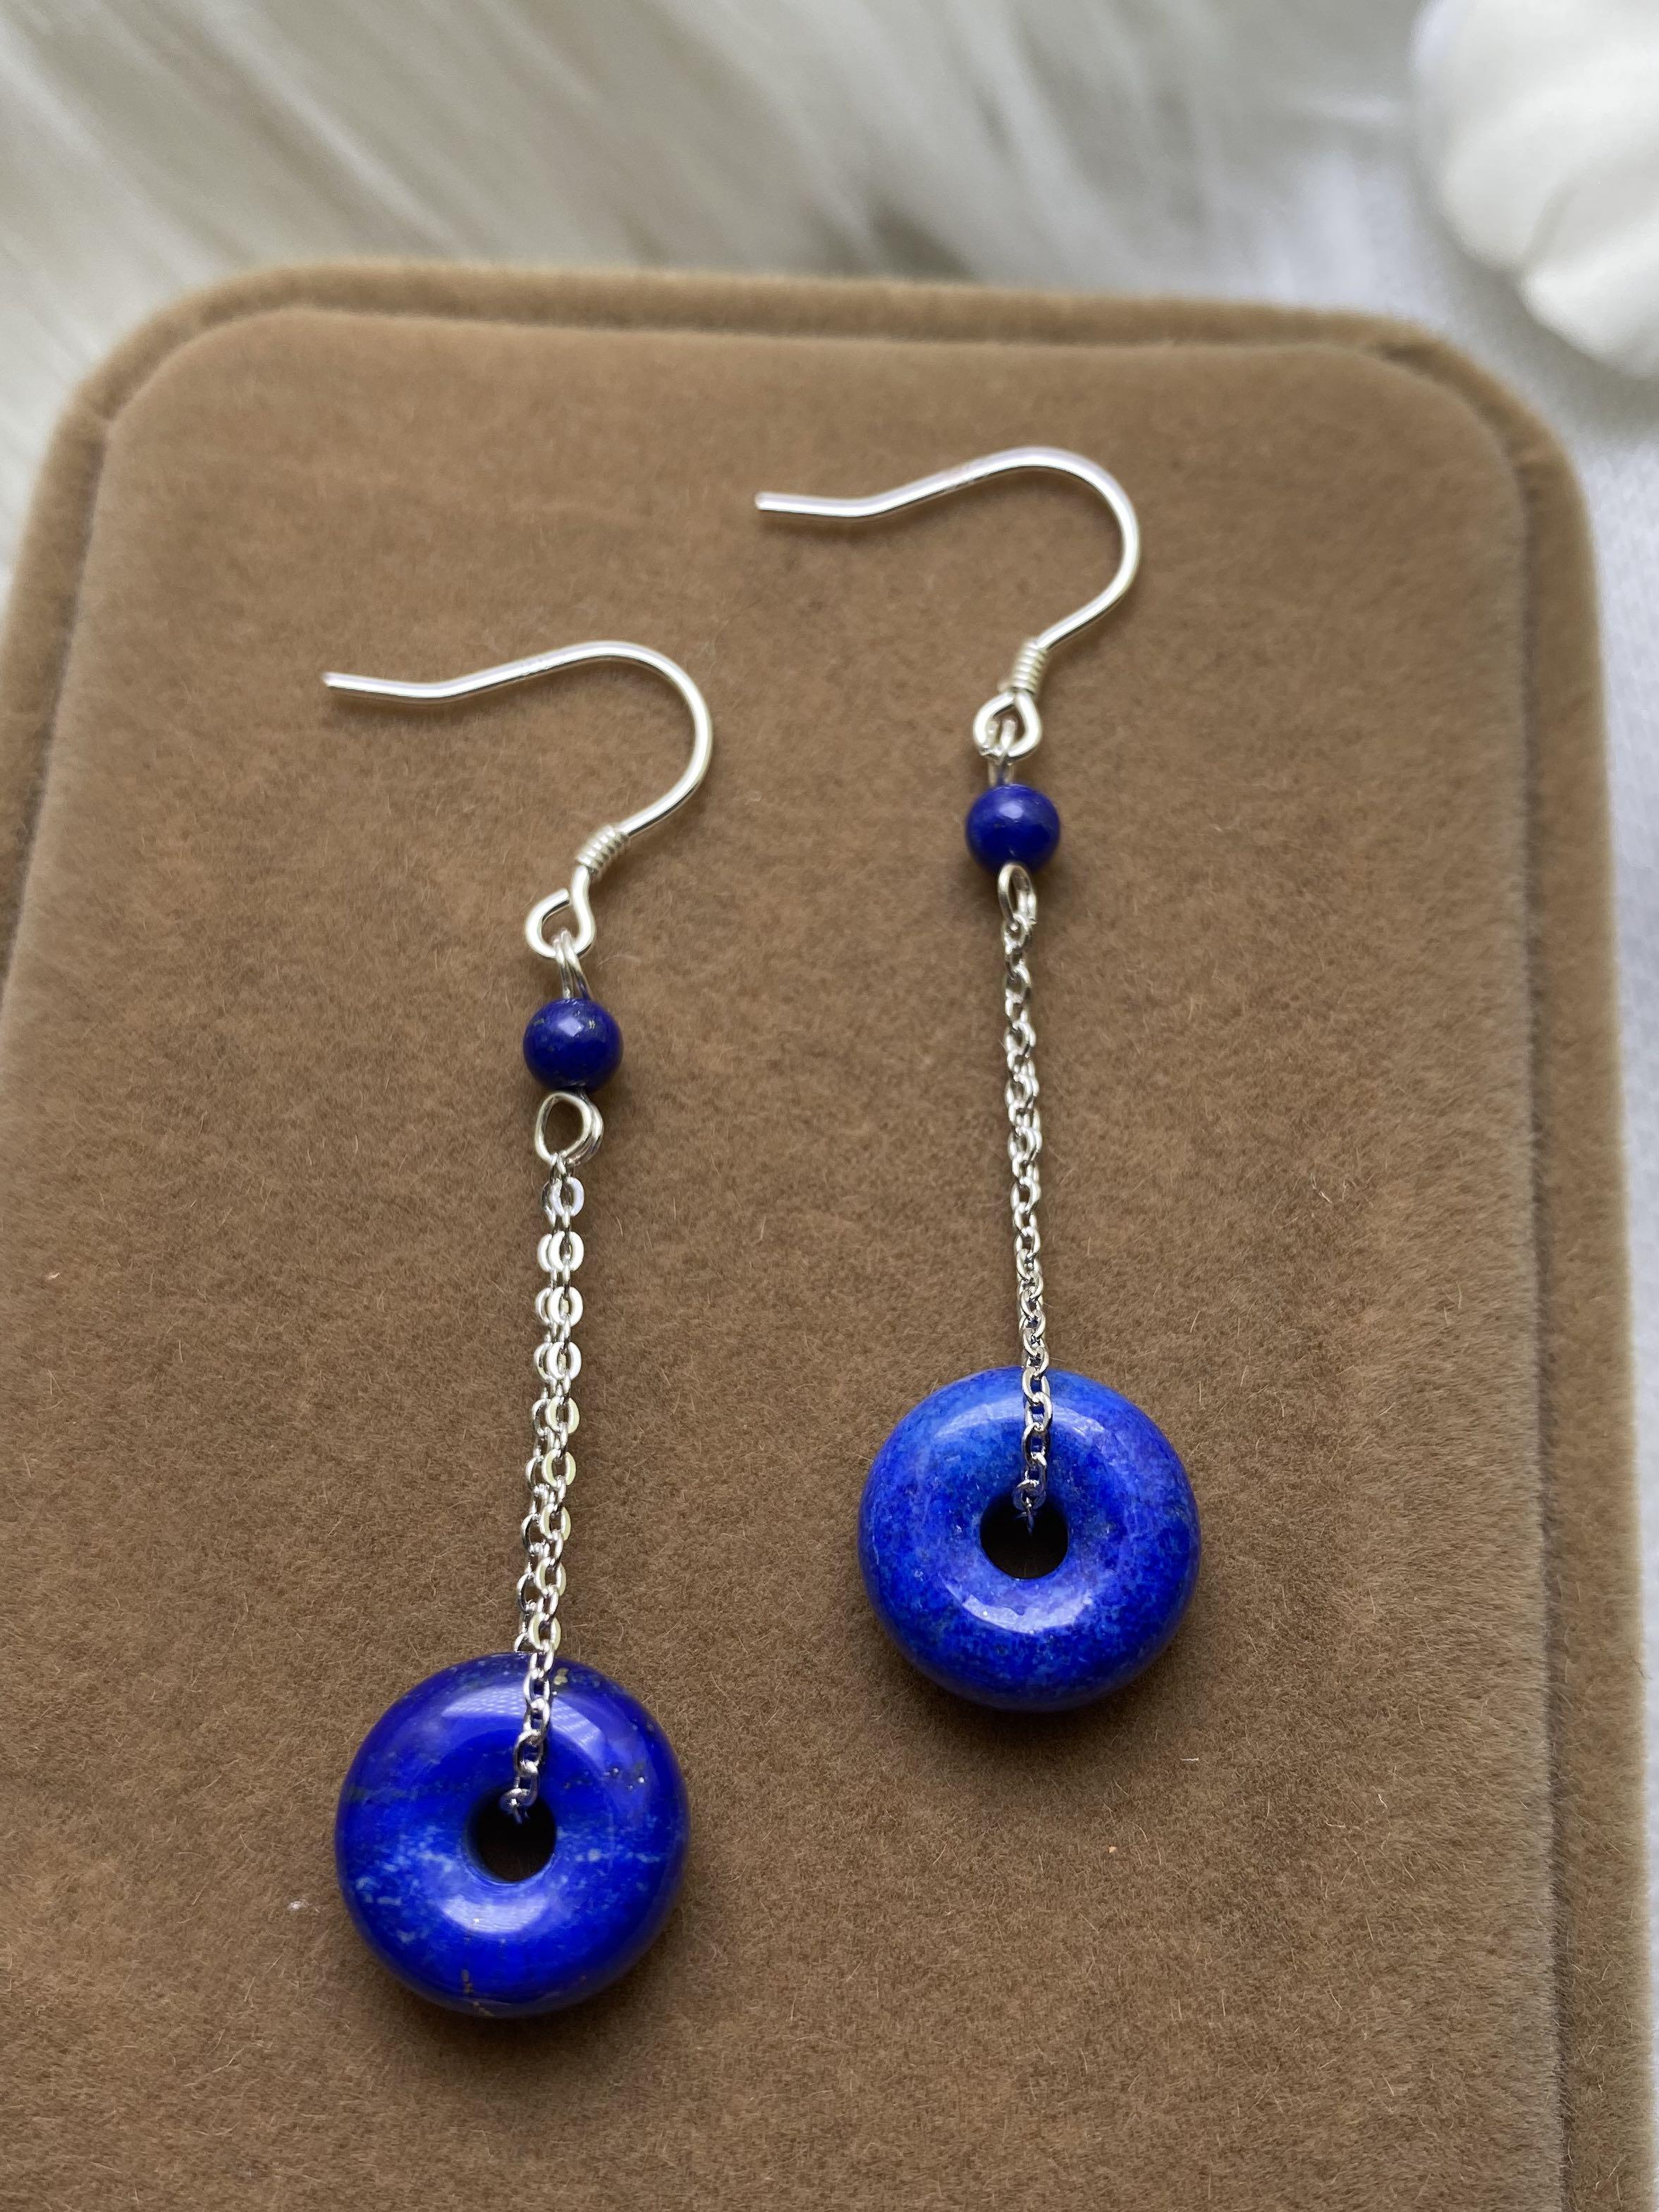 Natural Lapis Lazuli Donut Earrings S925 Silver